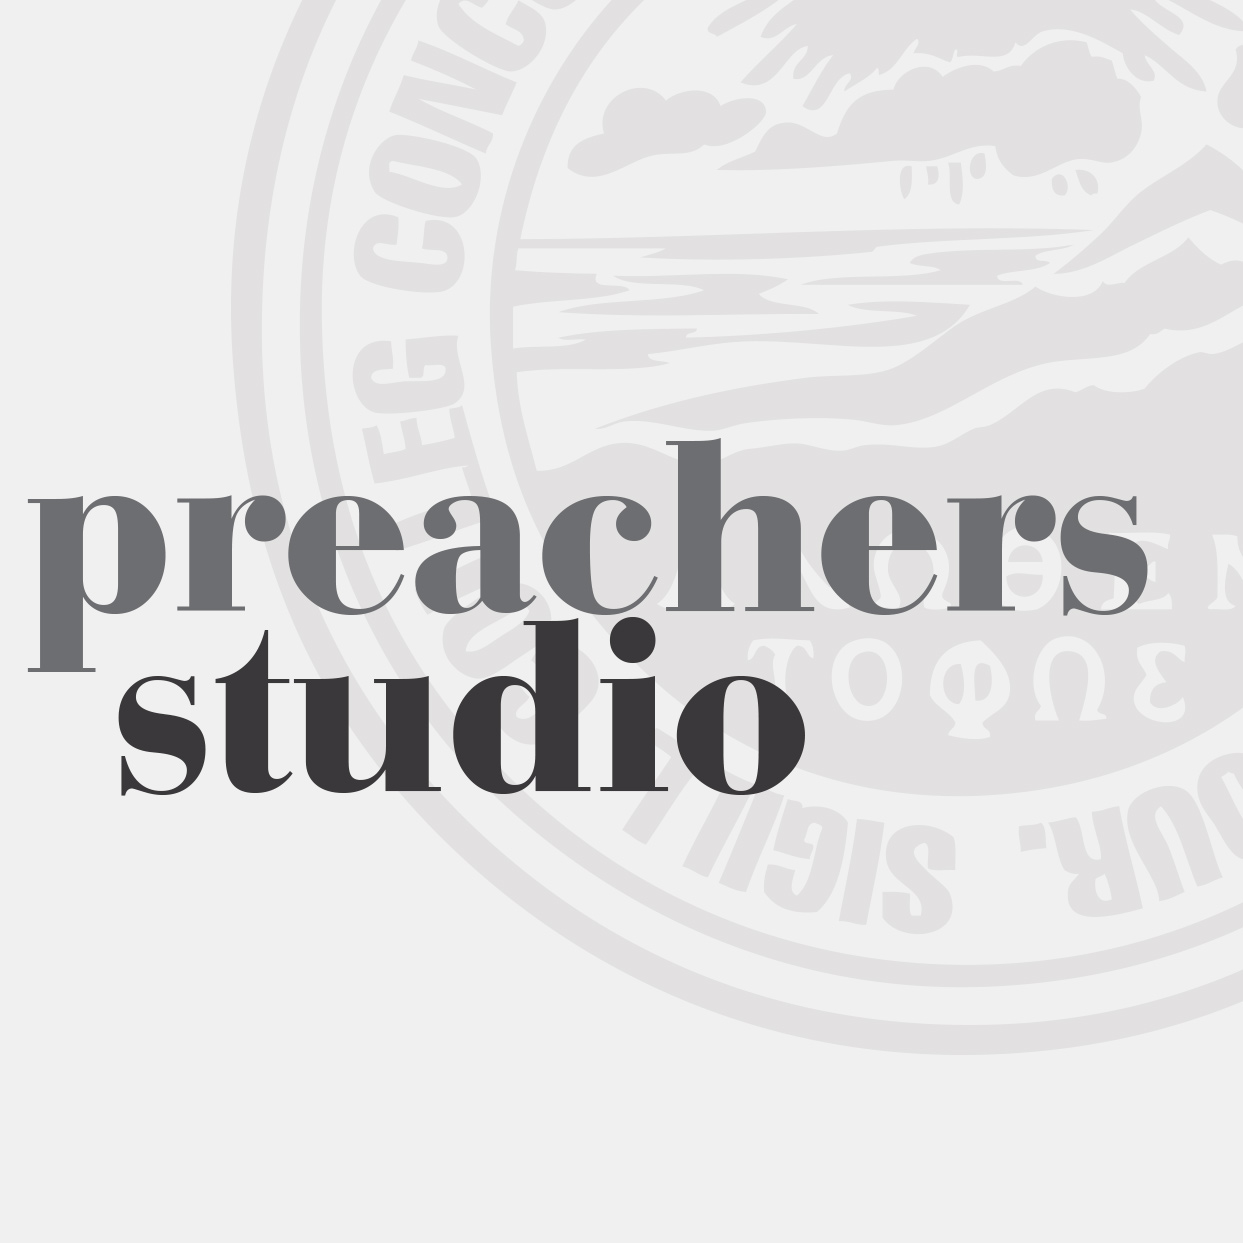 Preachers Studio: Ron Rall